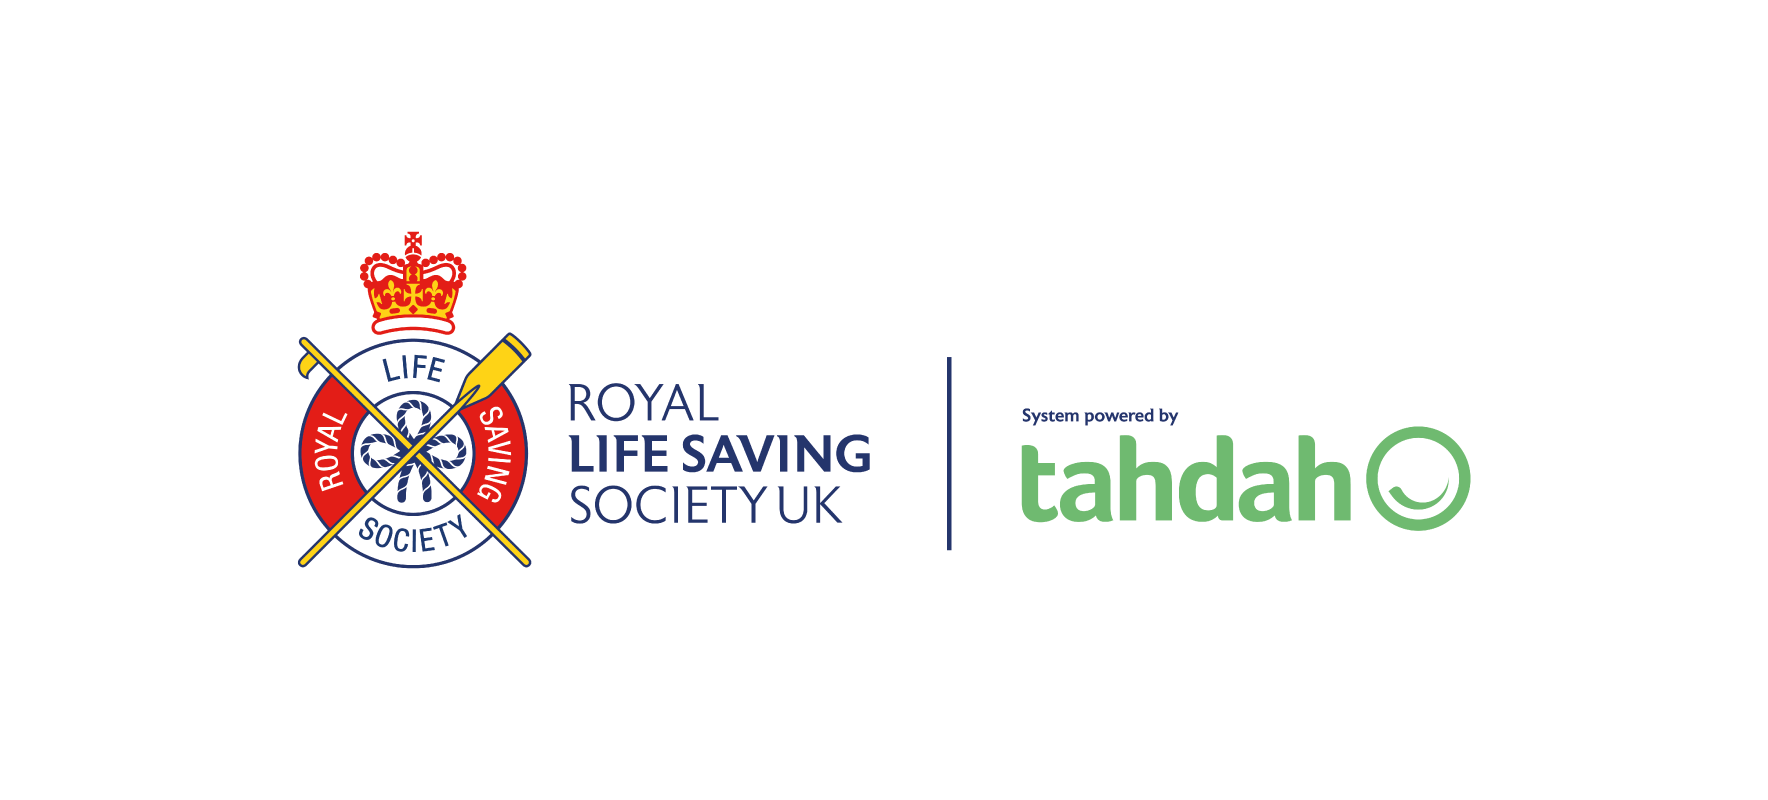 2020 vision for the Royal Life Saving Society UK's online services